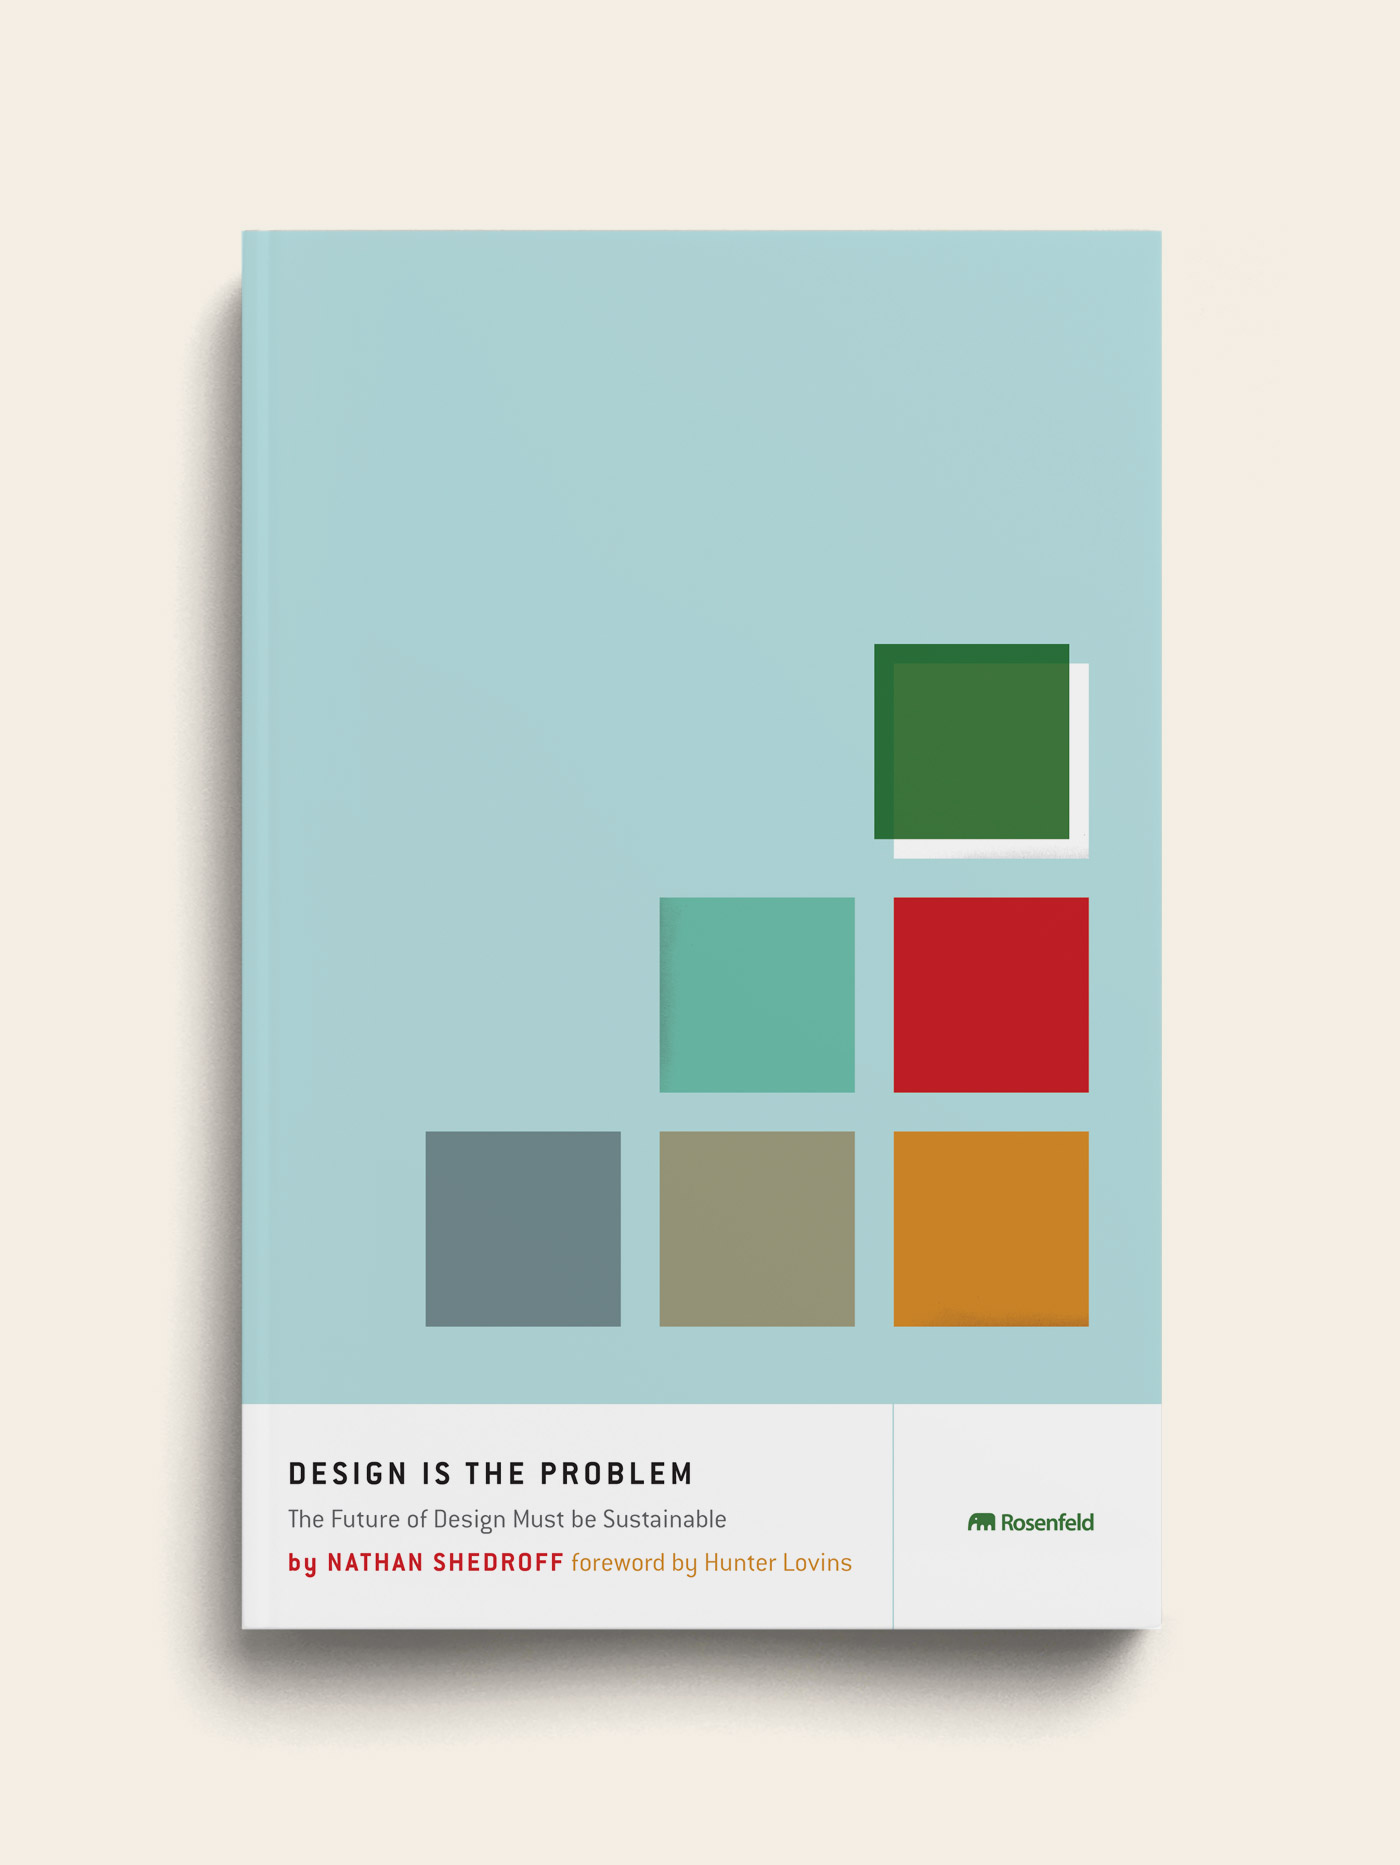 Design Problem - Rosenfeld Media Book Cover Series - The Heads of State